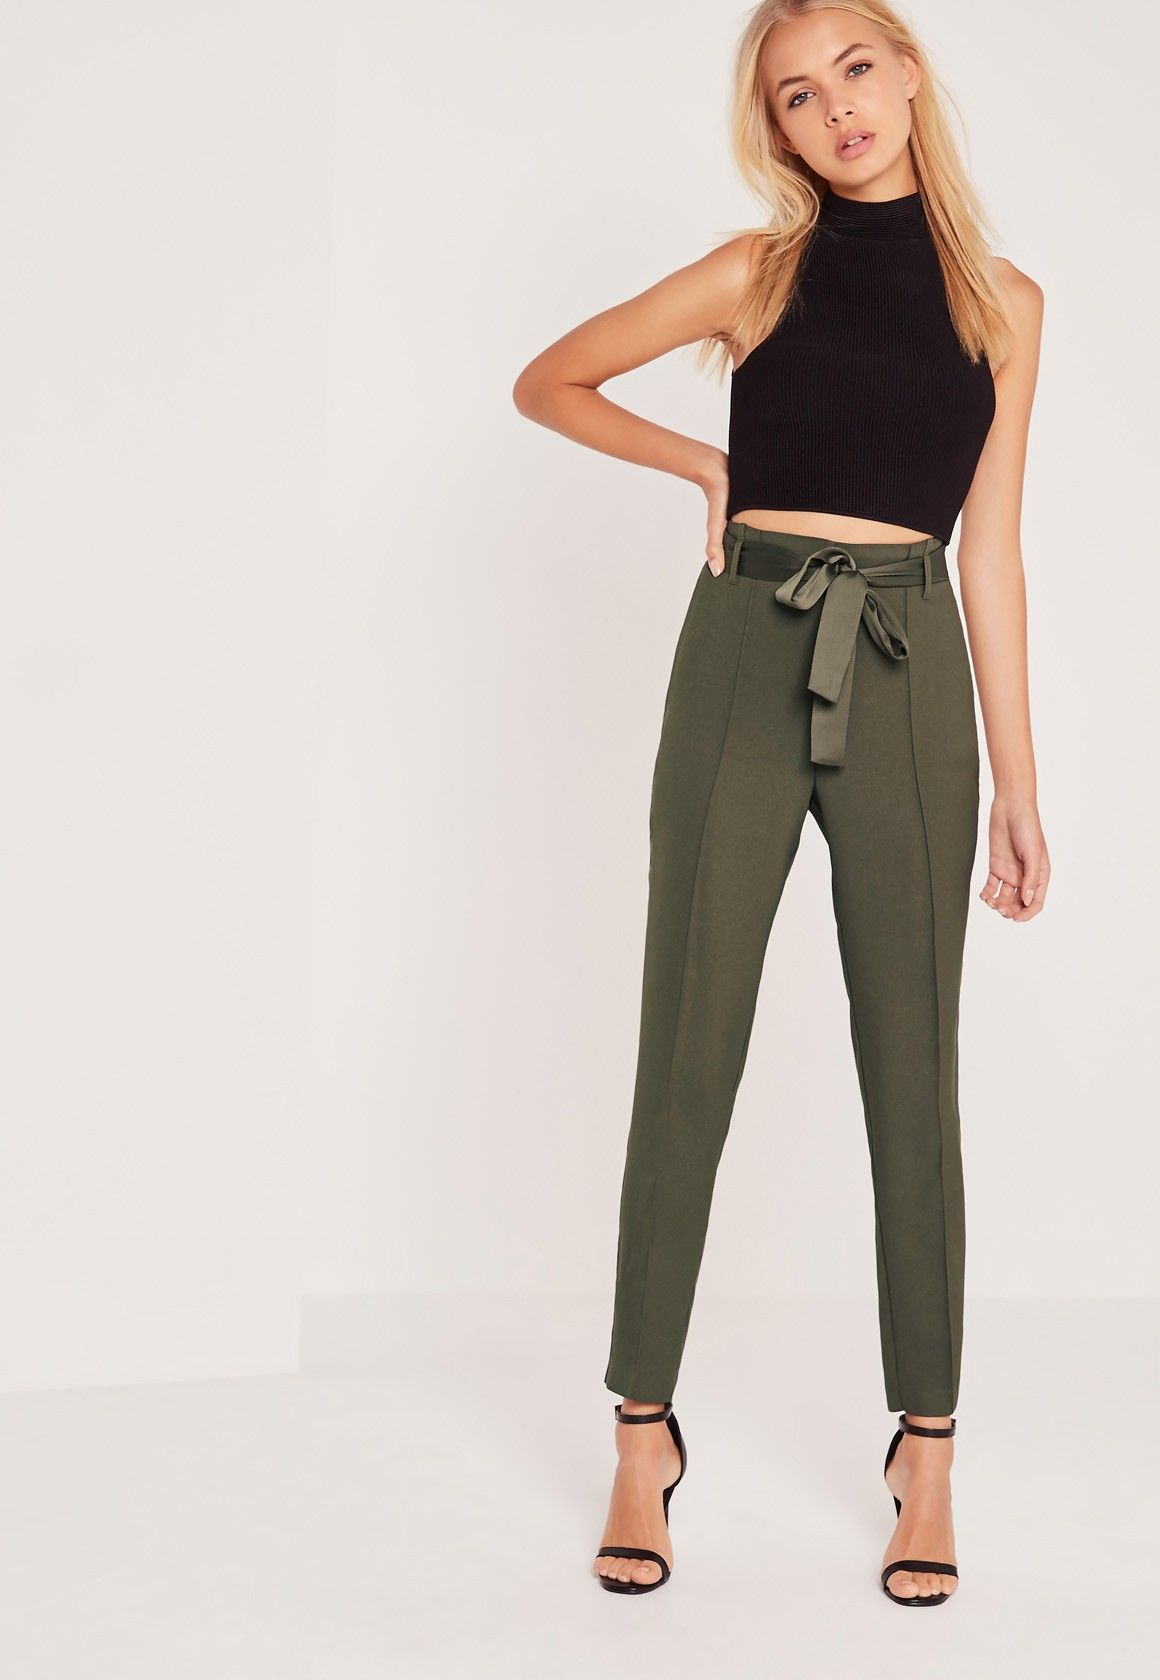 missguided pantalon cigarette vert kaki avec ceinture mode pinterest pantalon cigarette. Black Bedroom Furniture Sets. Home Design Ideas